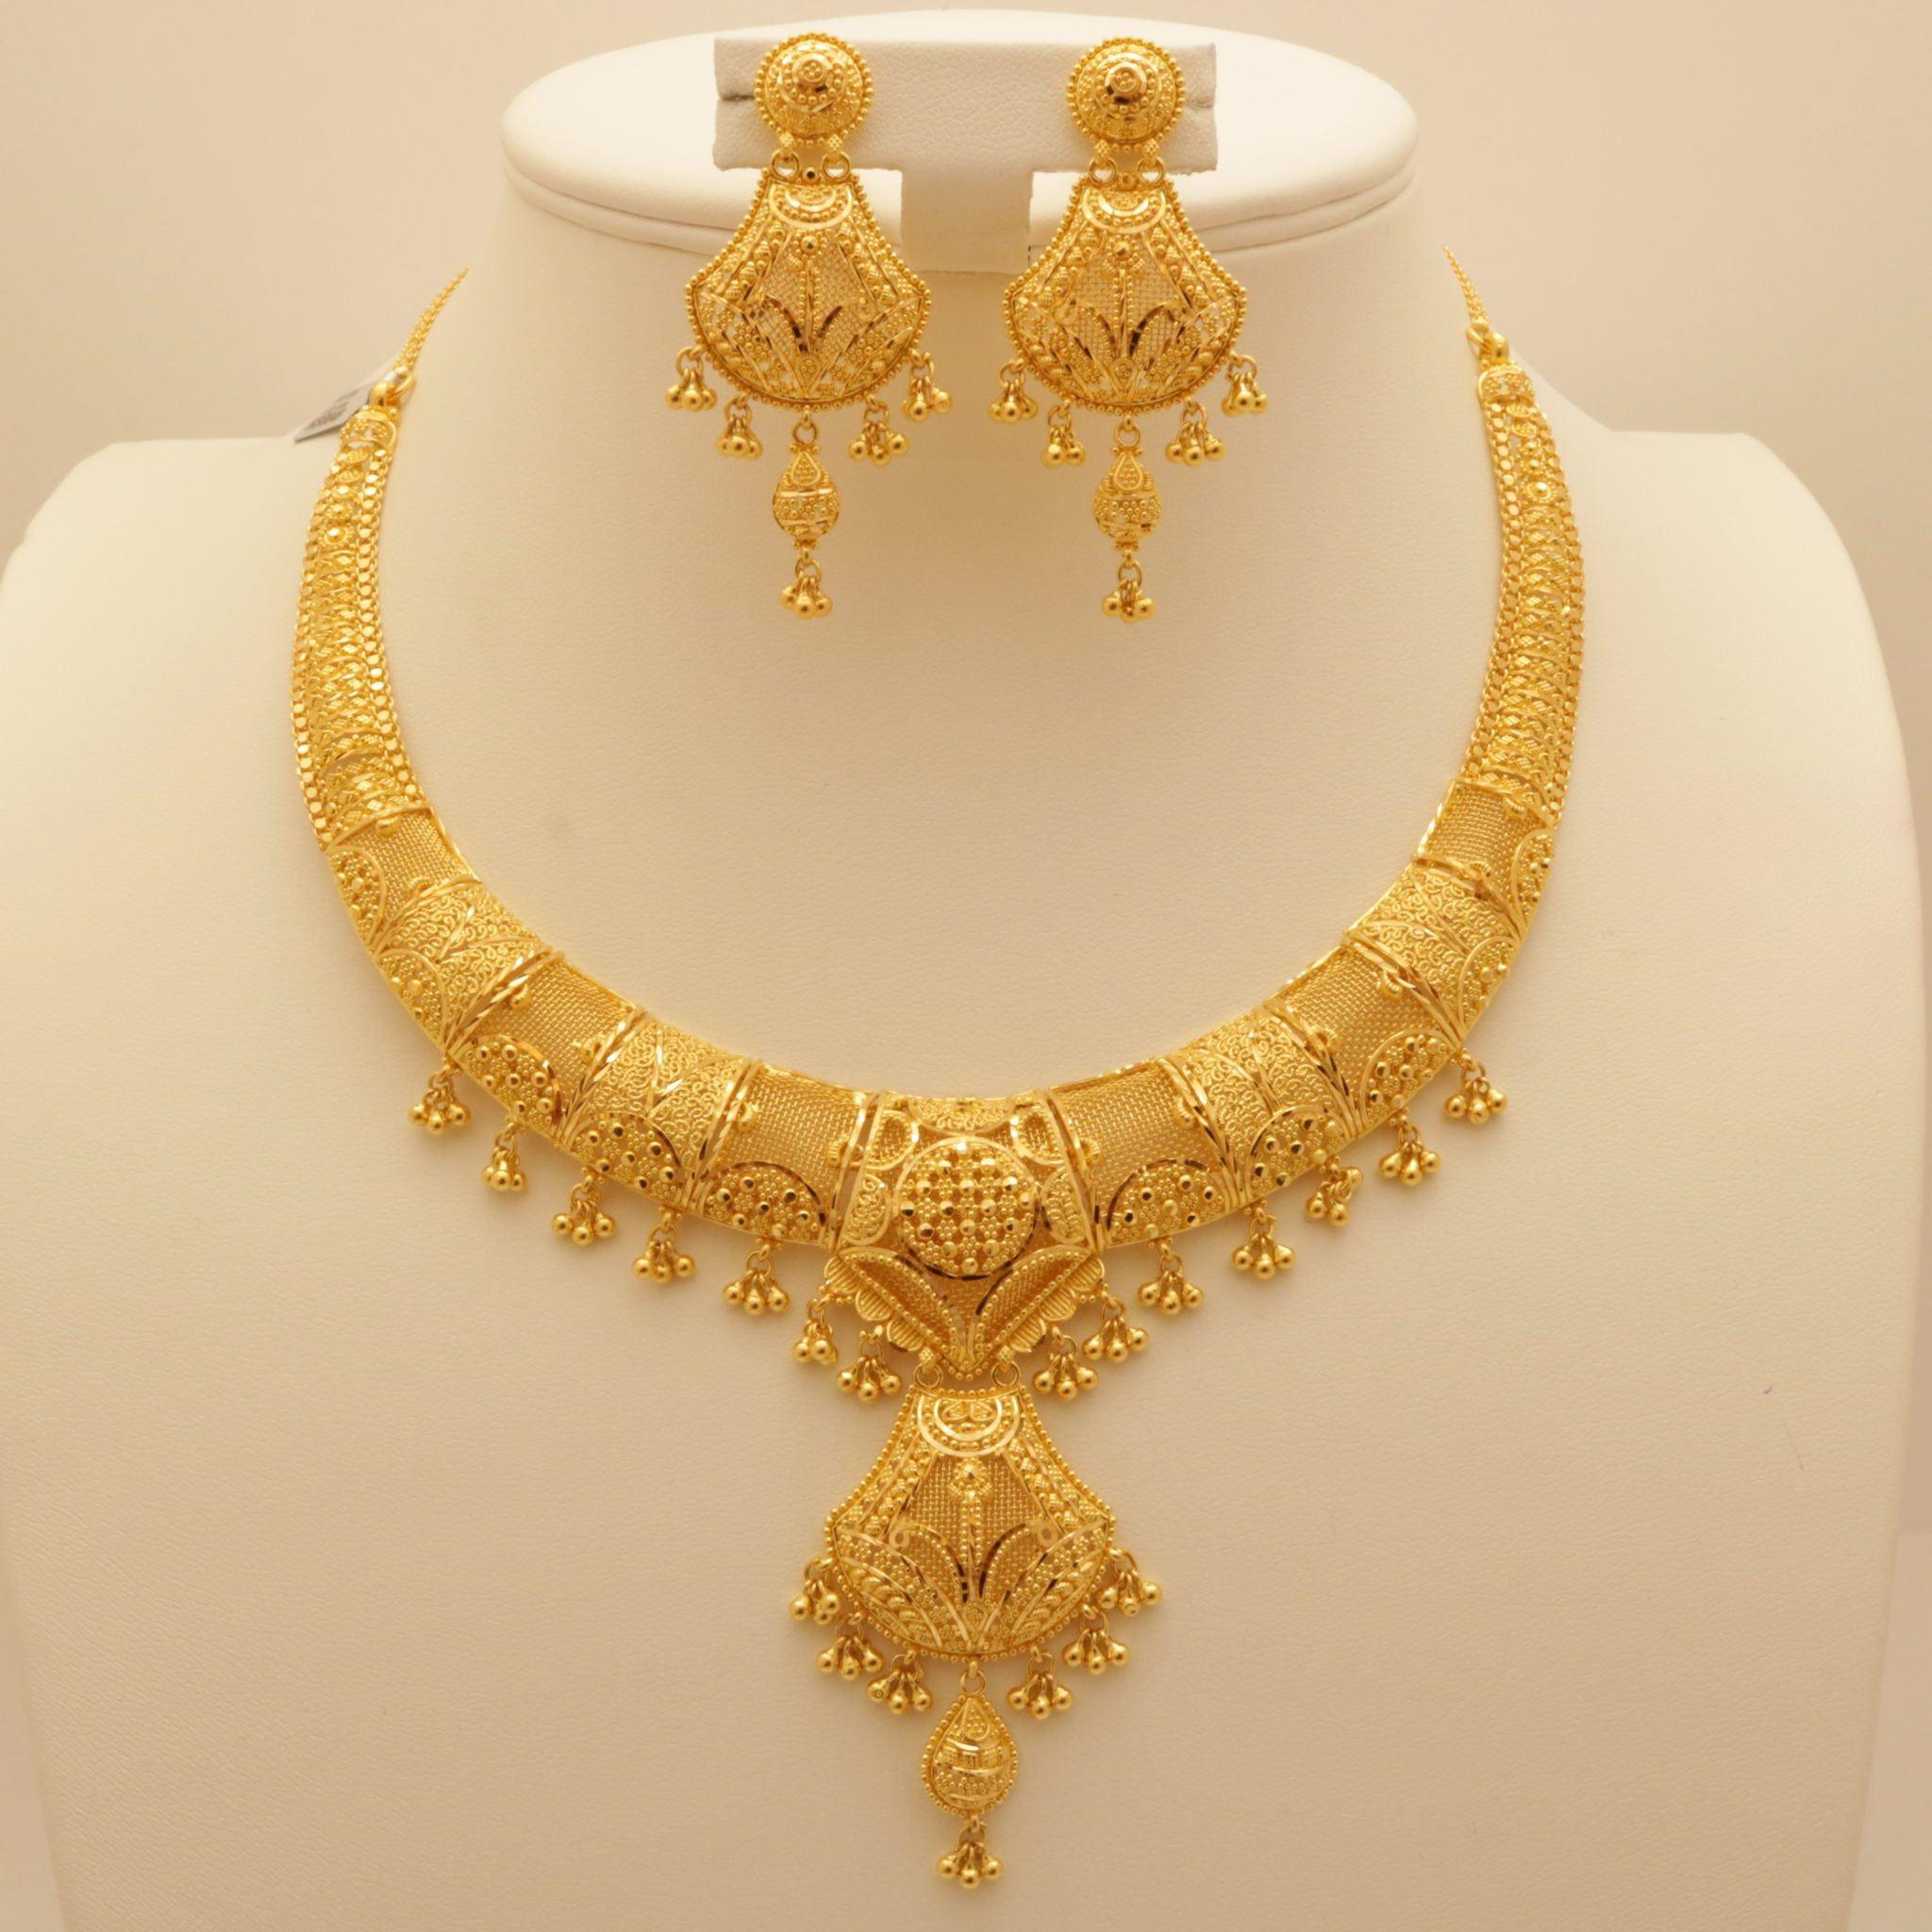 jewels sale long product min sokora photo nenna gold home sets necklace